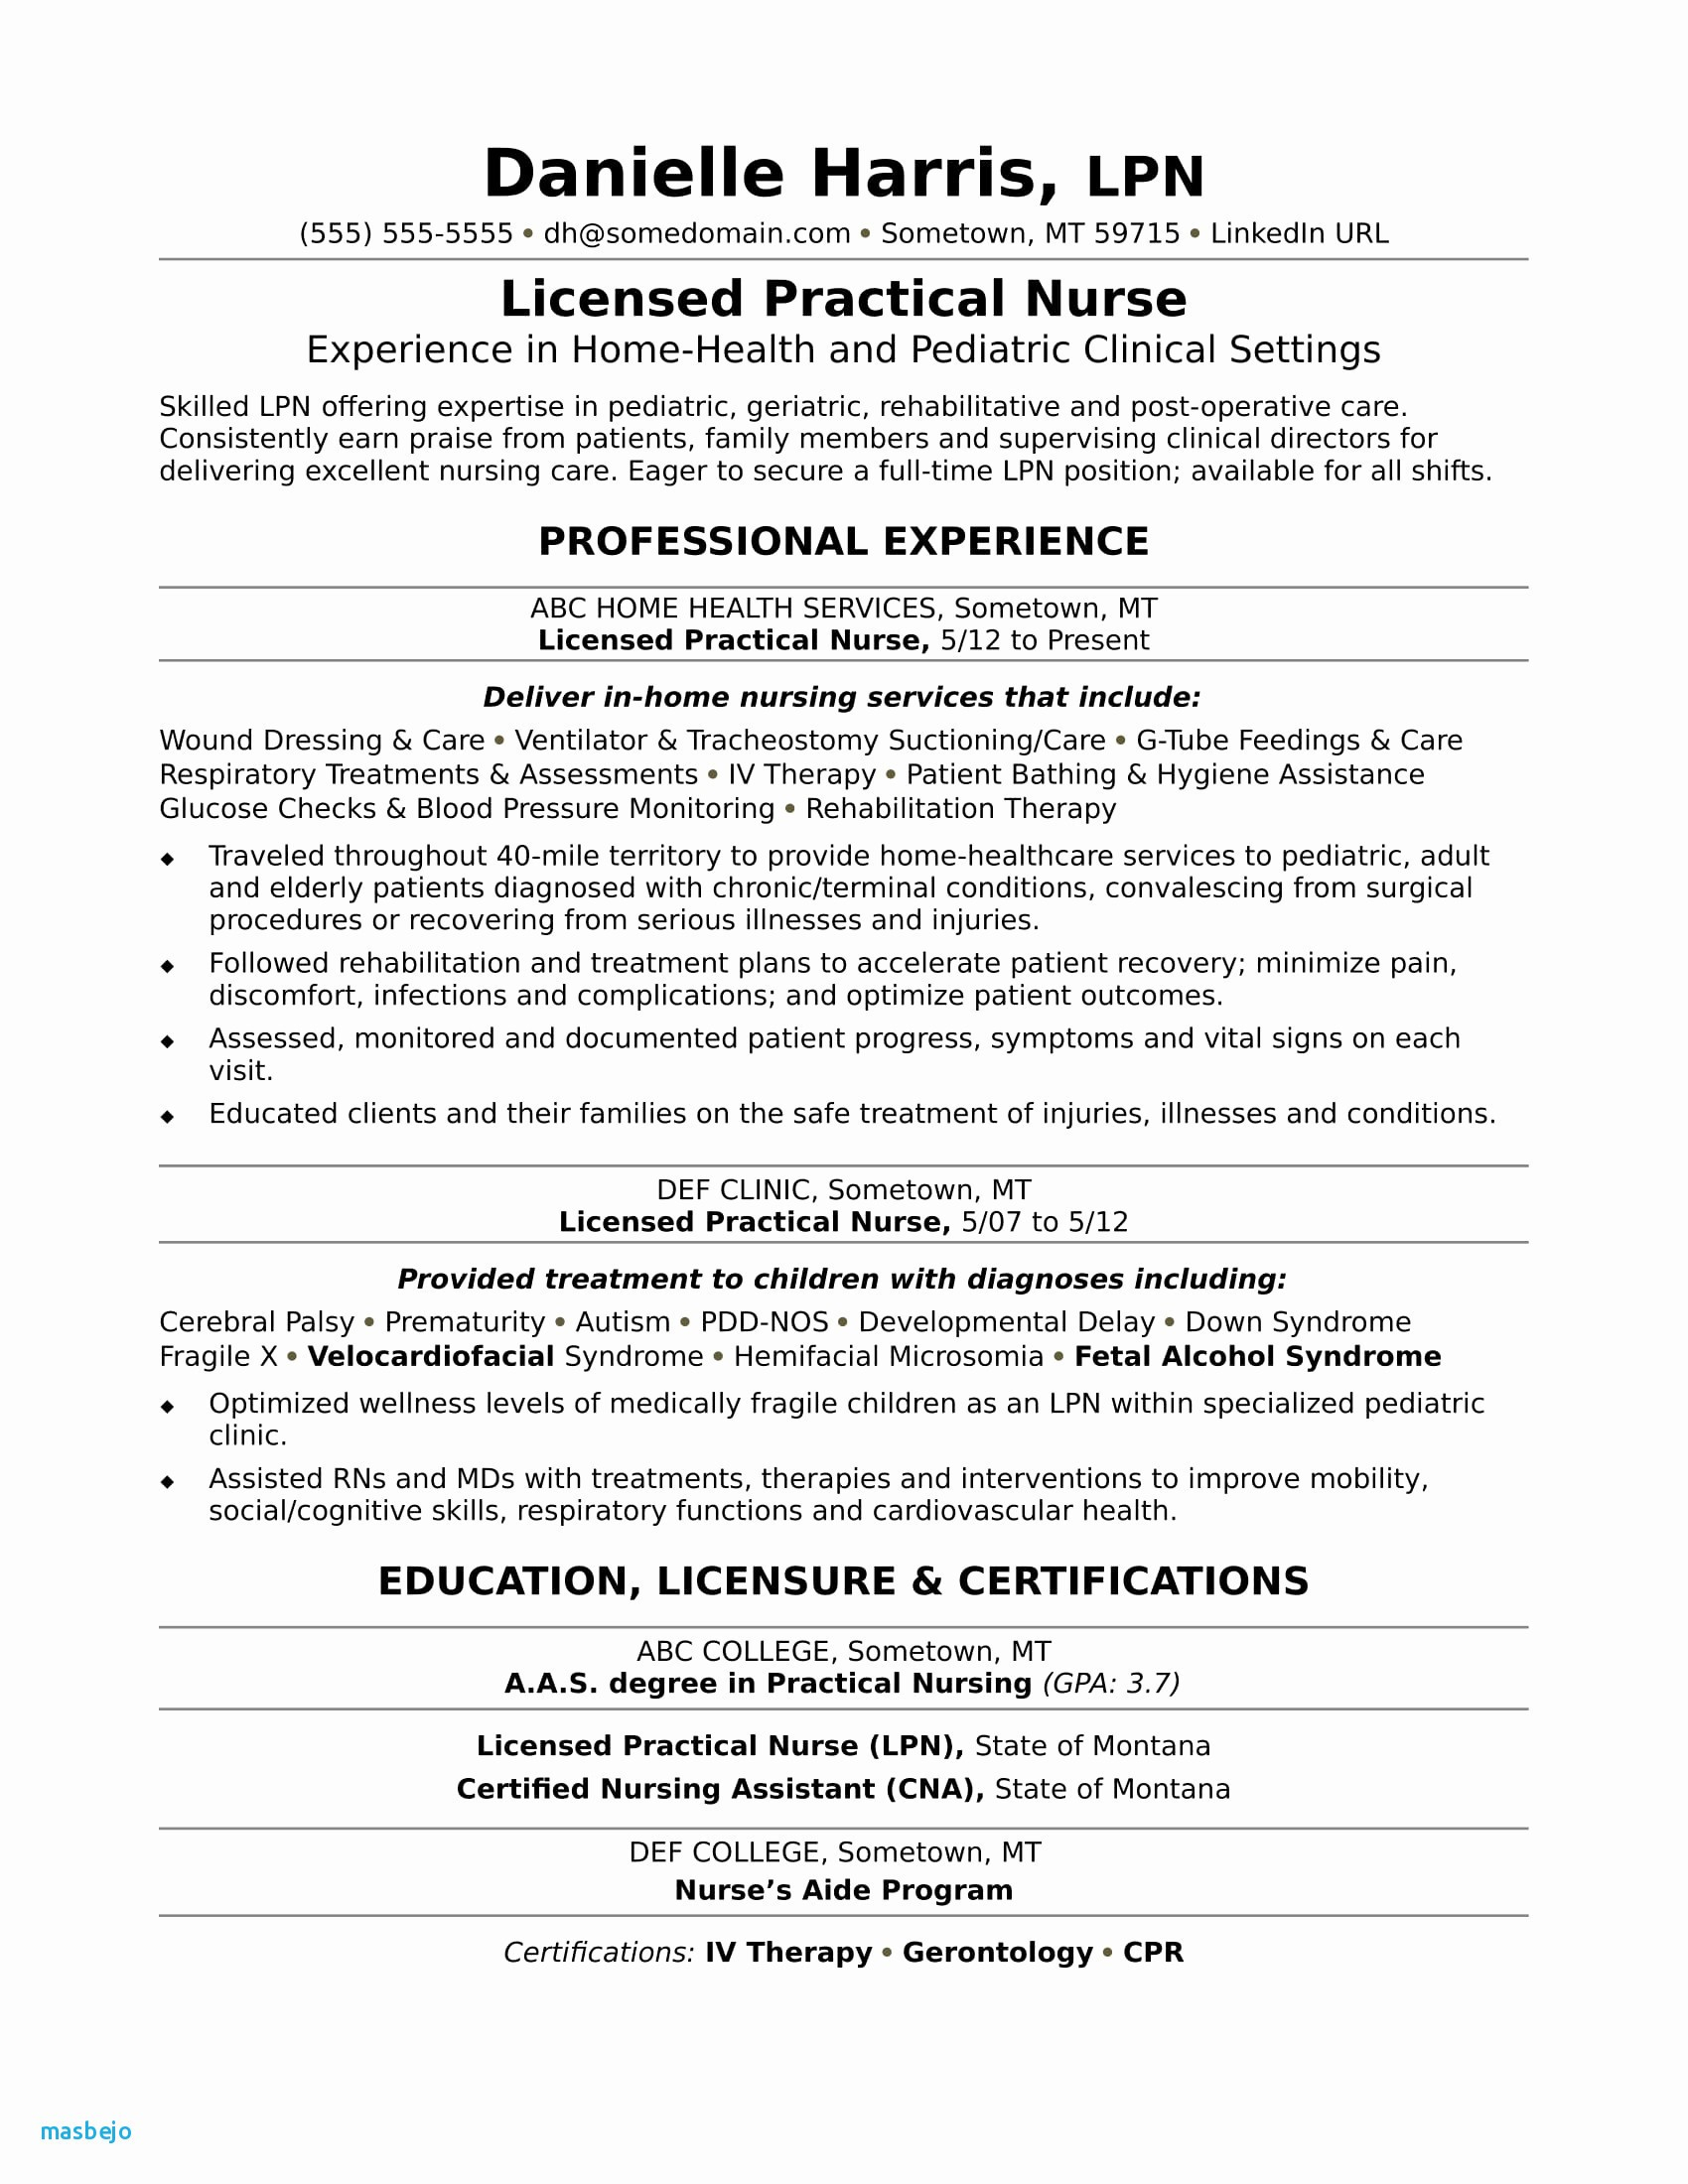 Home Health Aide Skills Resume - Sample Resume for A New Registered Nurse Resume Resume Examples